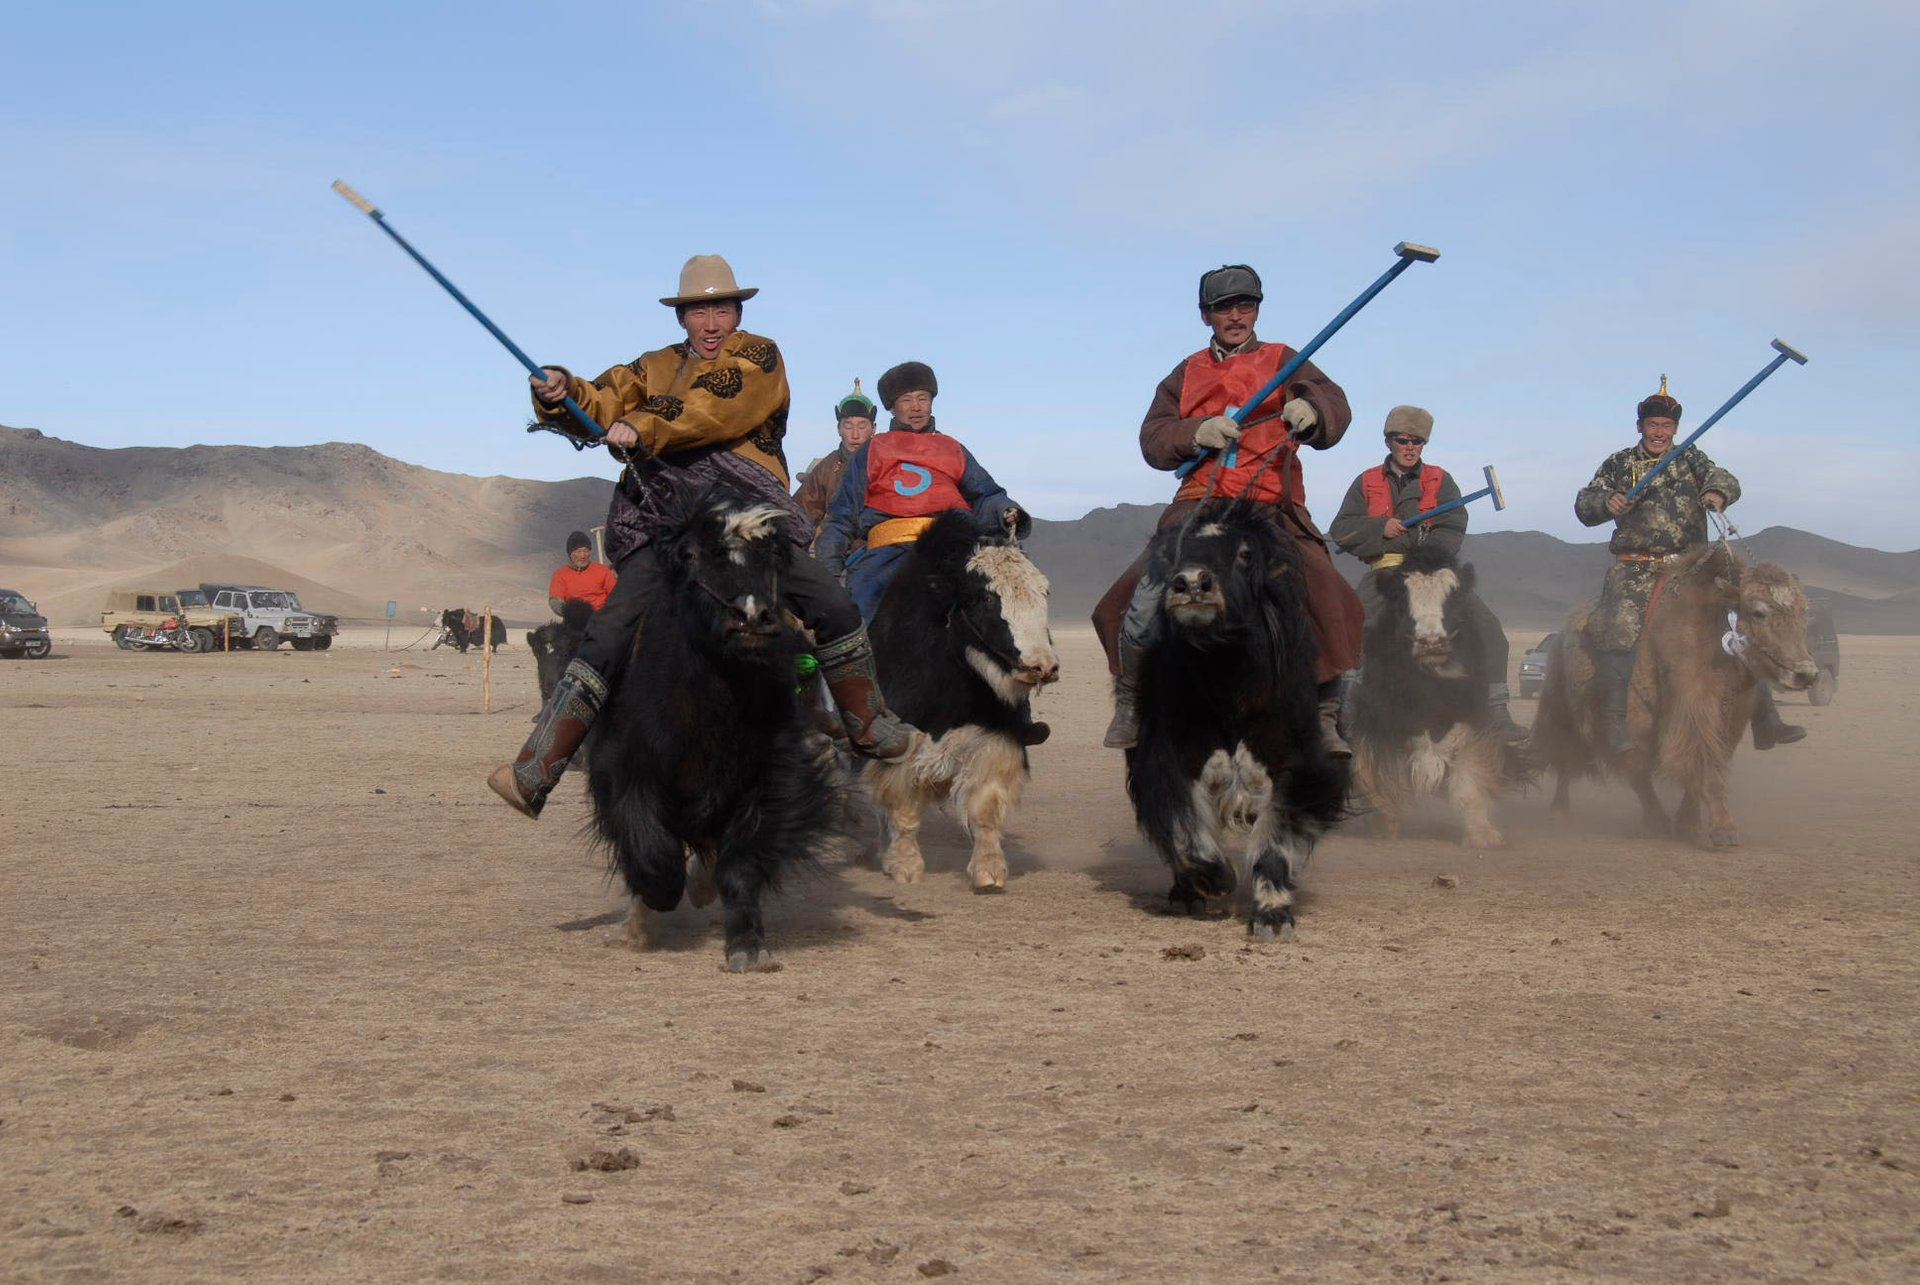 Yak Polo in Mongolia - Best Time